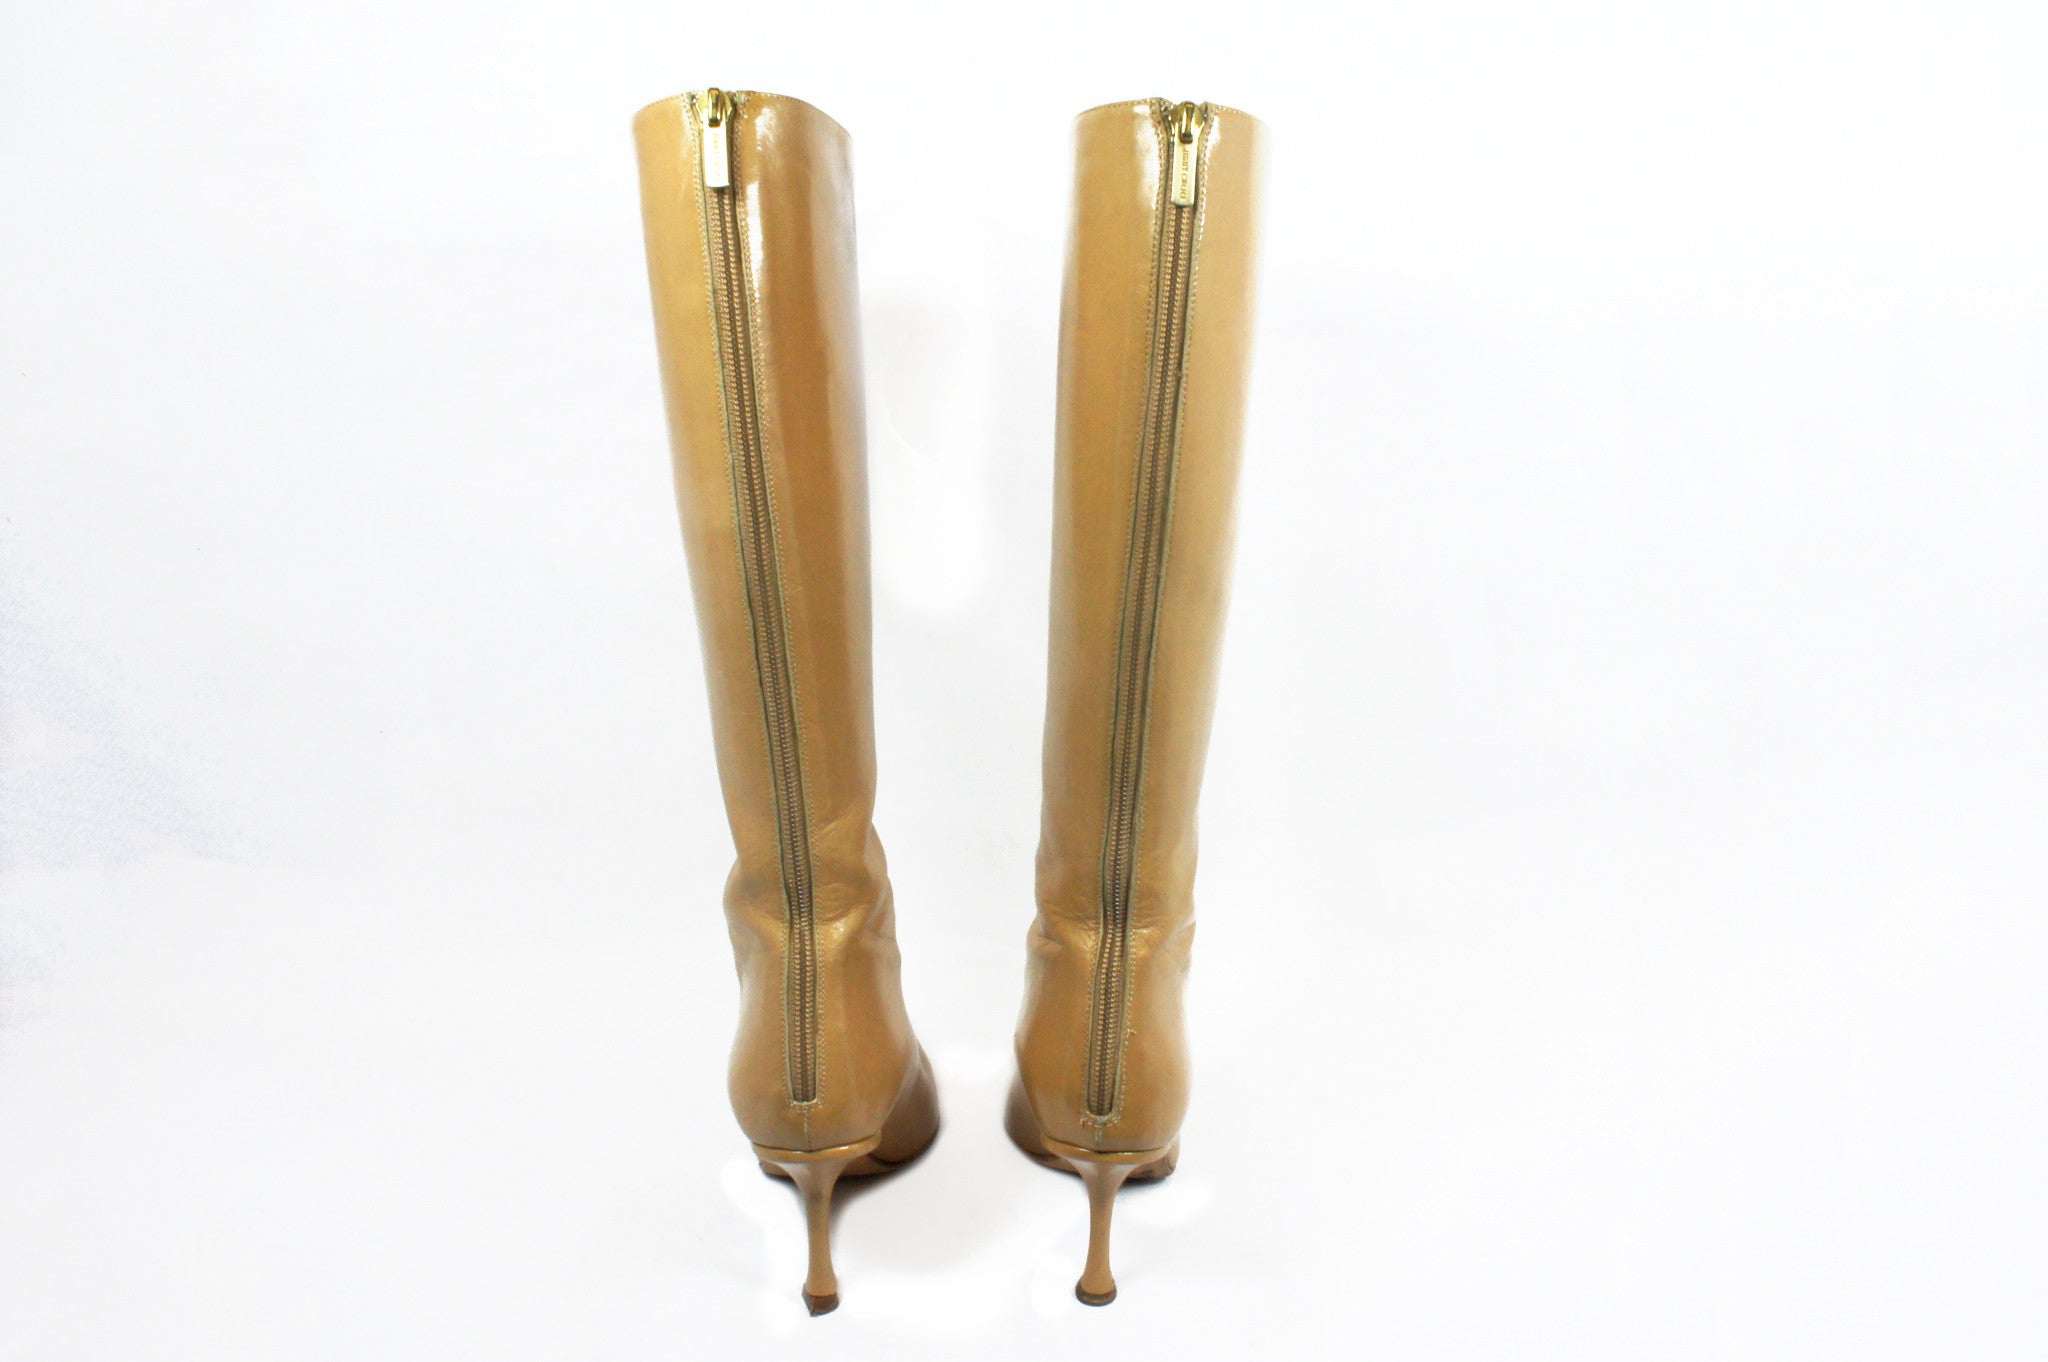 Jimmy Choo Beige Knee High Boots (Size 36.5) - Encore Consignment - 4